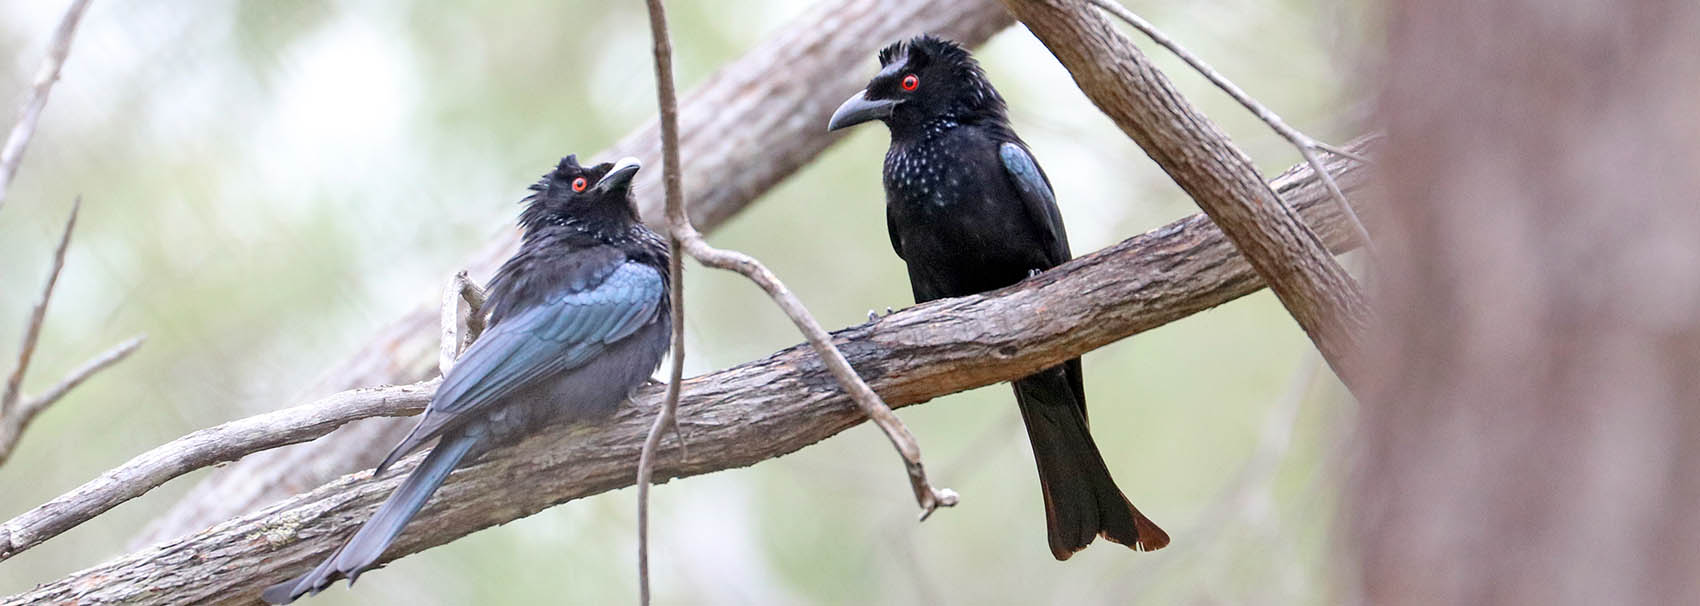 Spangled Drongo (image by Damon Ramsey)